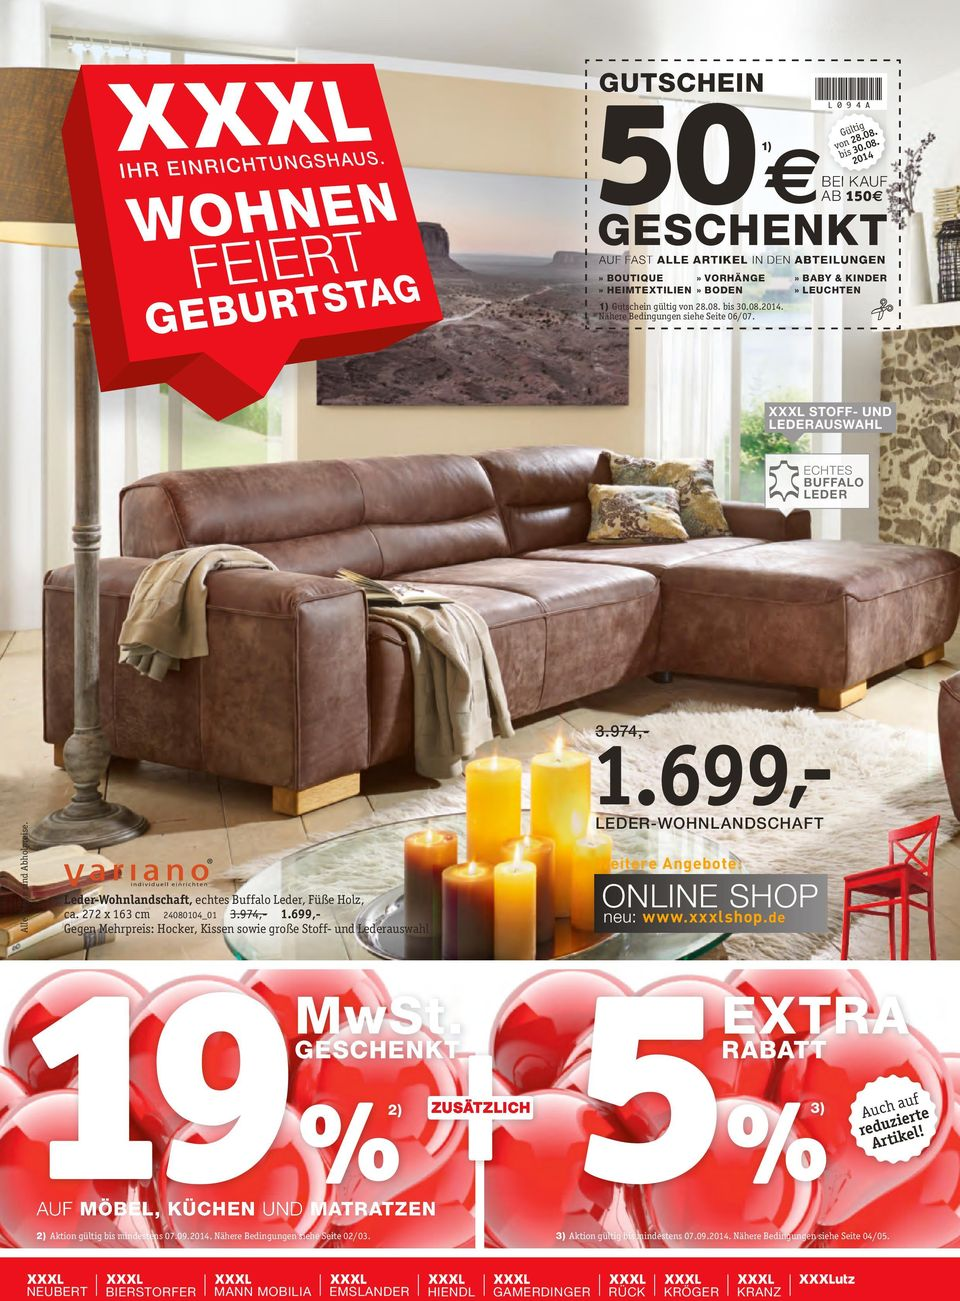 19 2 extra mwst online shop gutschein rabatt. Black Bedroom Furniture Sets. Home Design Ideas